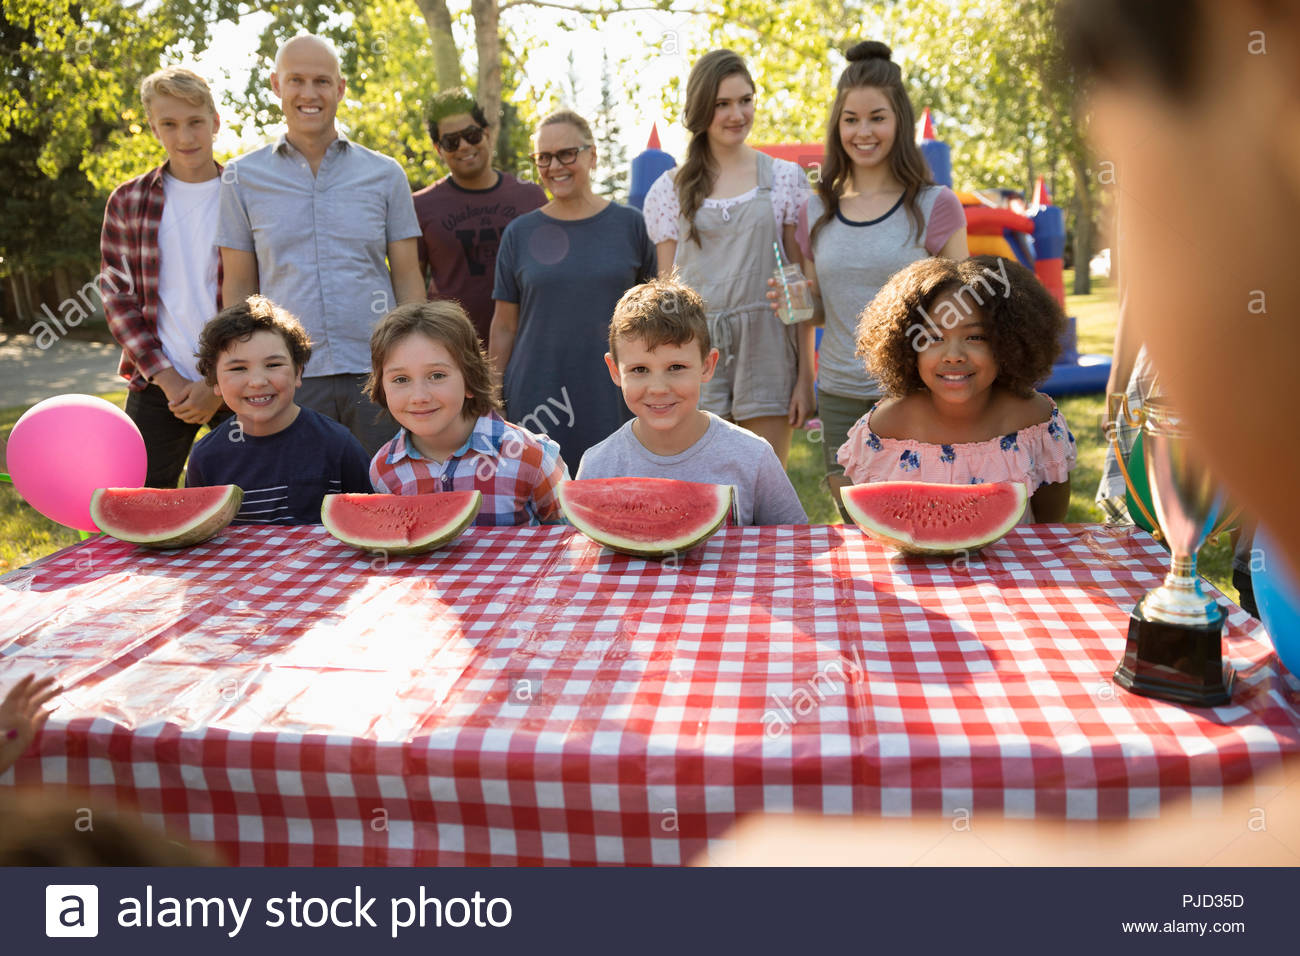 Kids preparing for watermelon eating contest at summer neighborhood block party in park - Stock Image